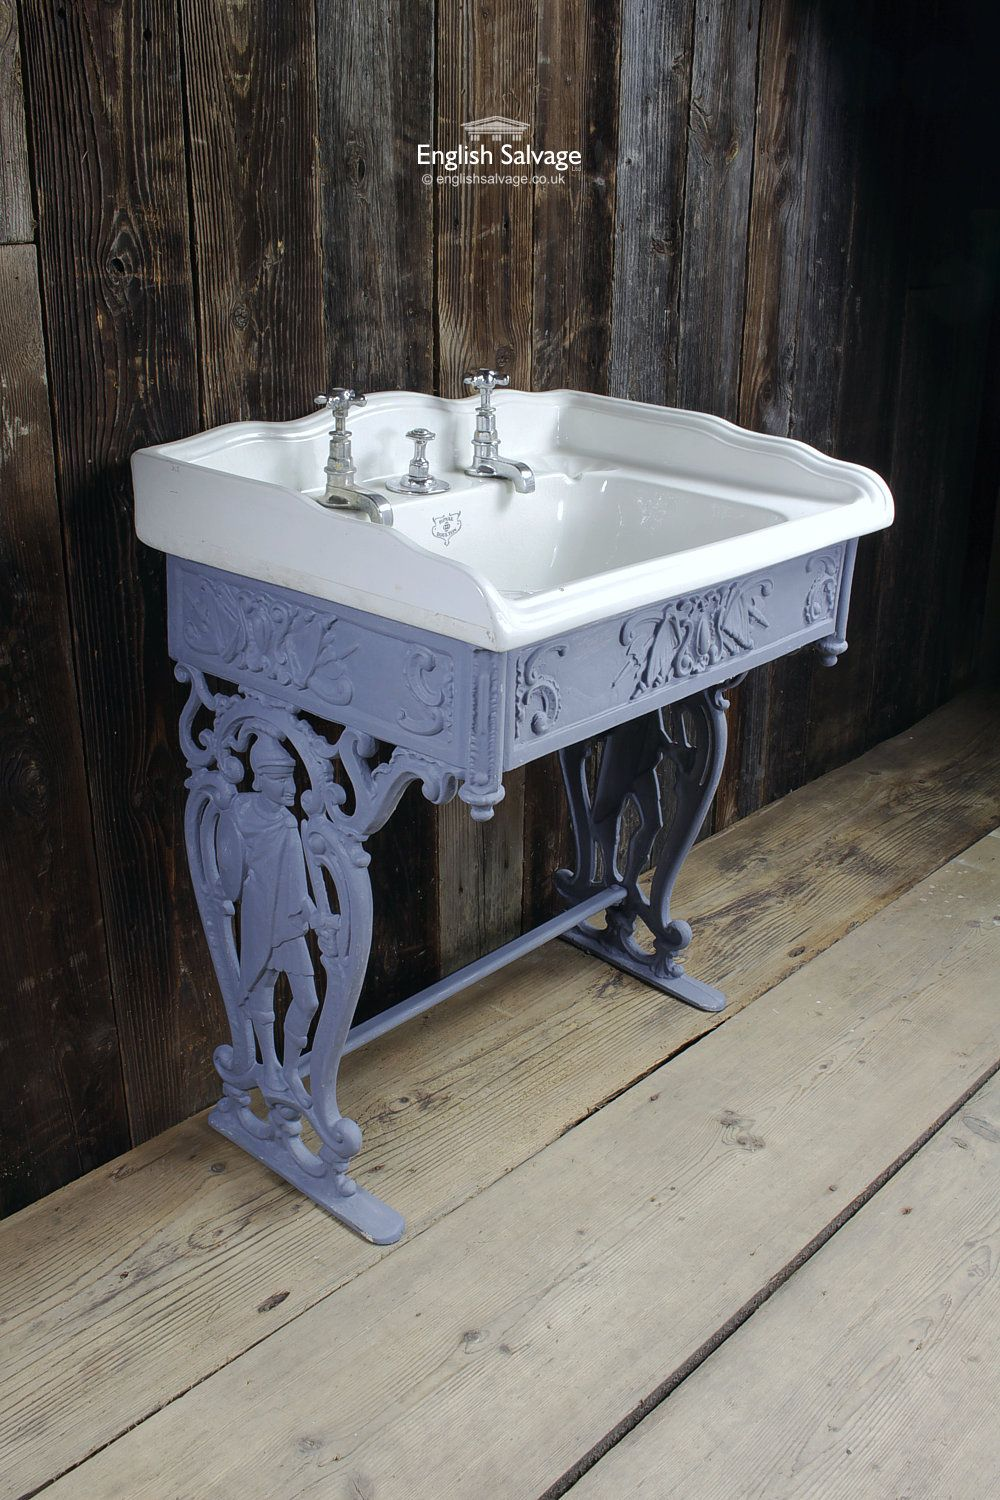 Shanks sink and stand reclaimed porcelain sinks and chrome stands - Royal Doulton Basin With Decorative Stand